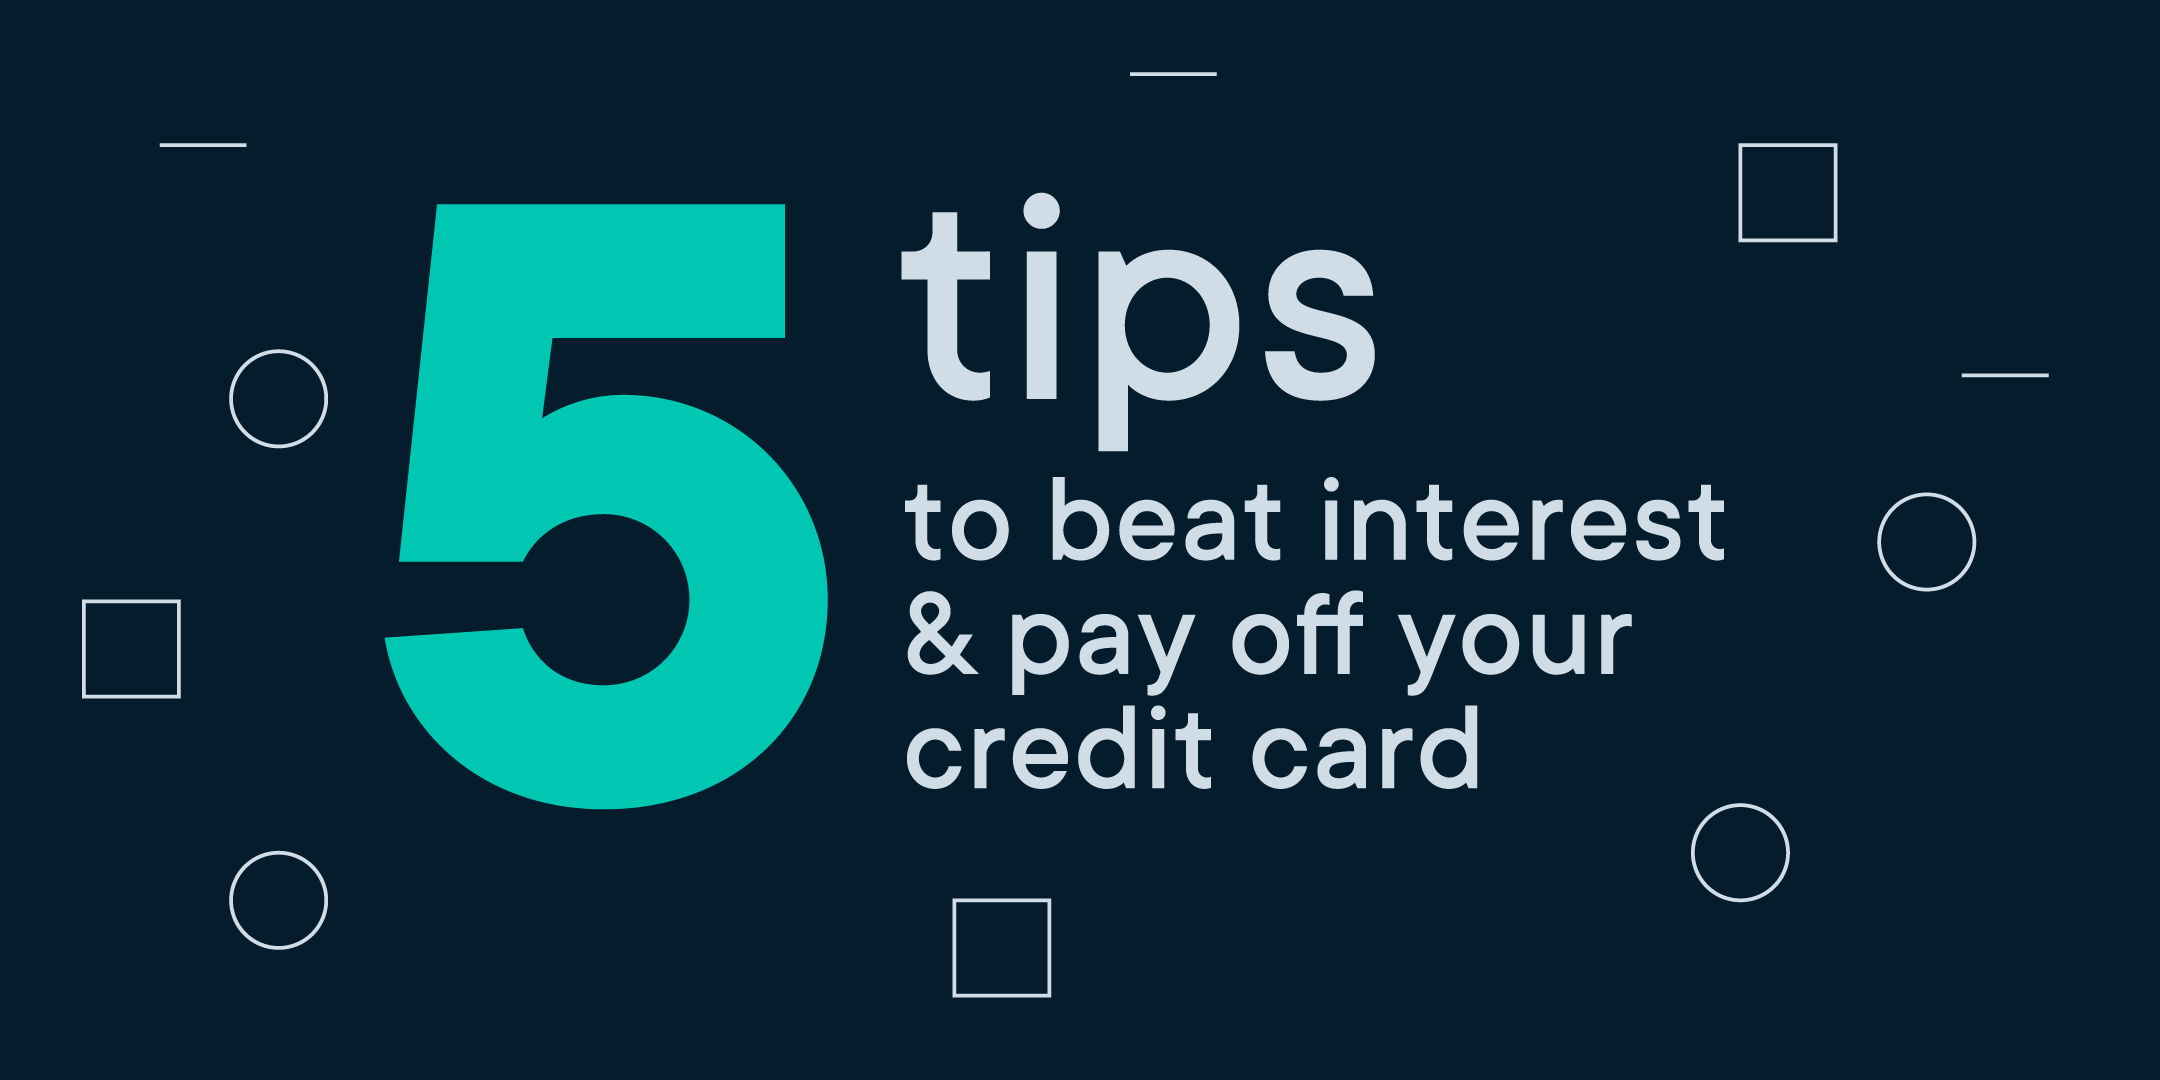 5 tips to beat interest and pay off your credit card